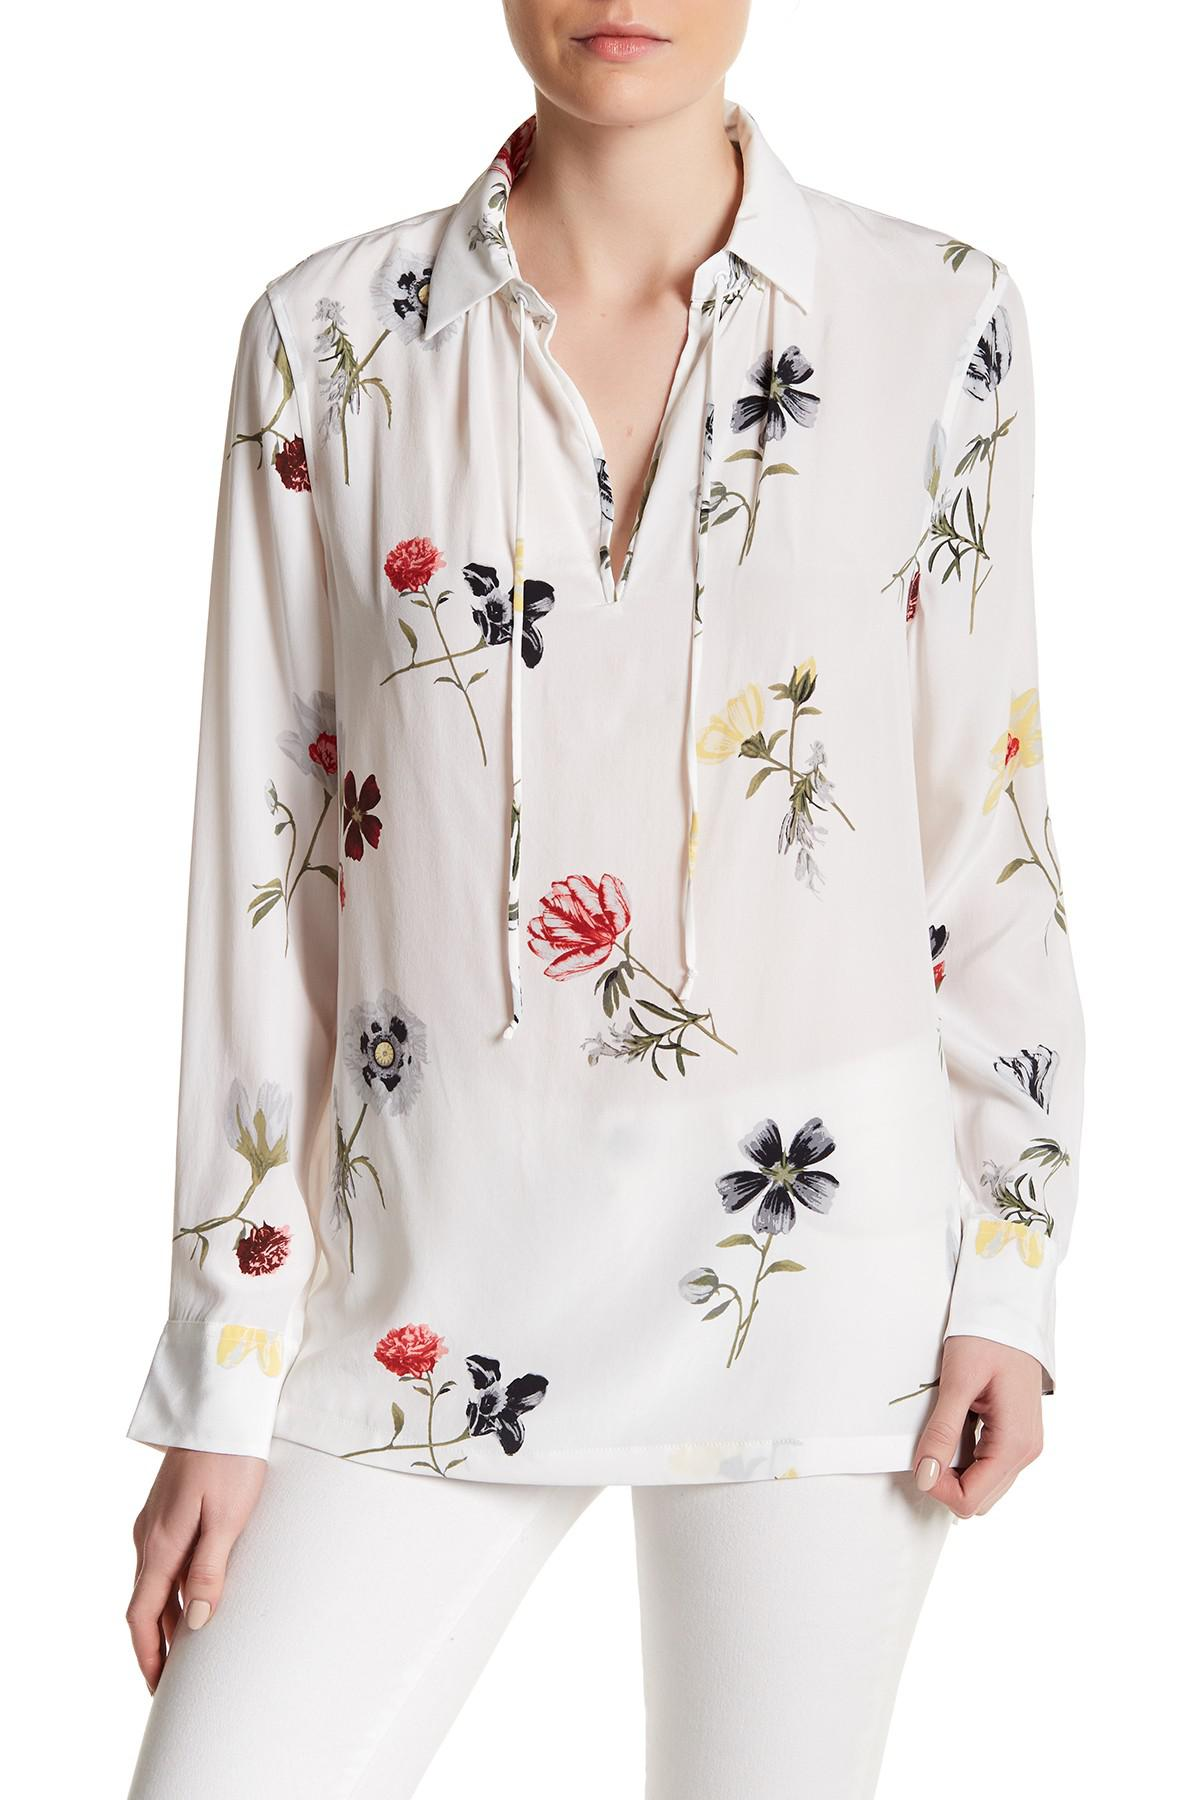 Sale Newest Best Cheap Price Equipment Woman Tasseled Washed-silk Blouse White Size S Equipment Prices Cheap Online Many Kinds Of For Sale Pre Order Cheap Online i1Obuw